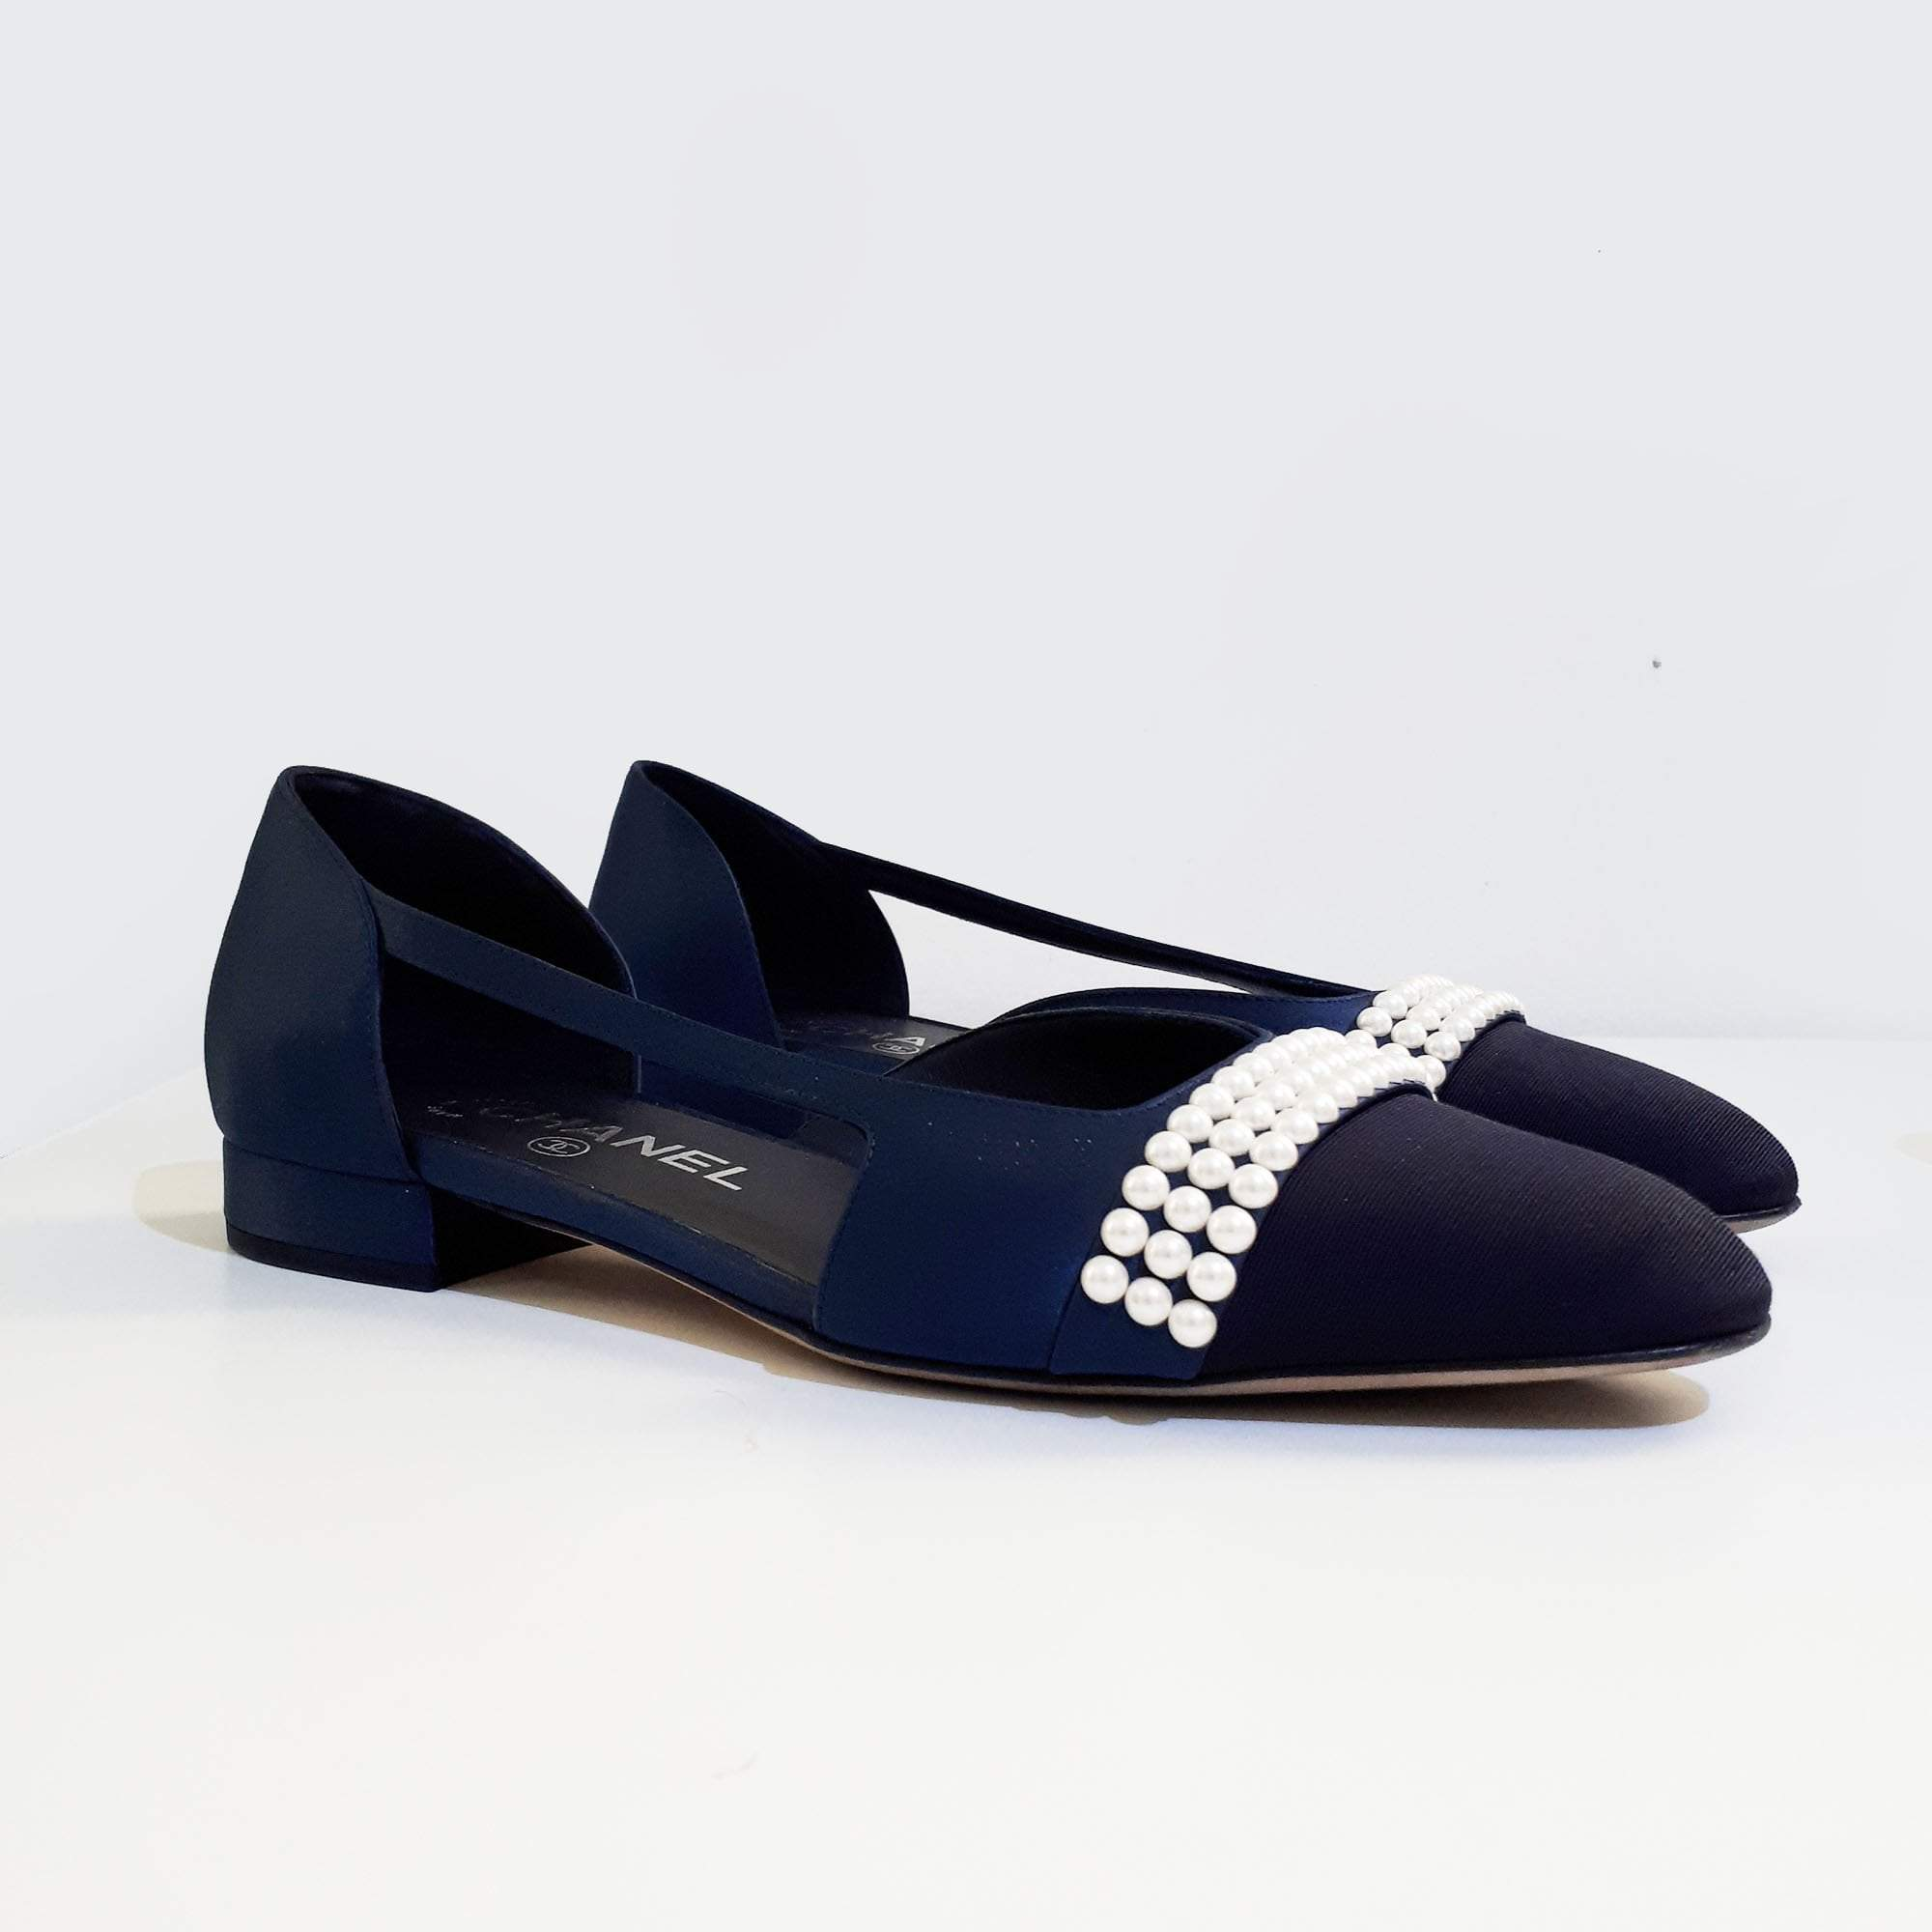 Chanel d'Orsay Flats with Rounded Square Toes